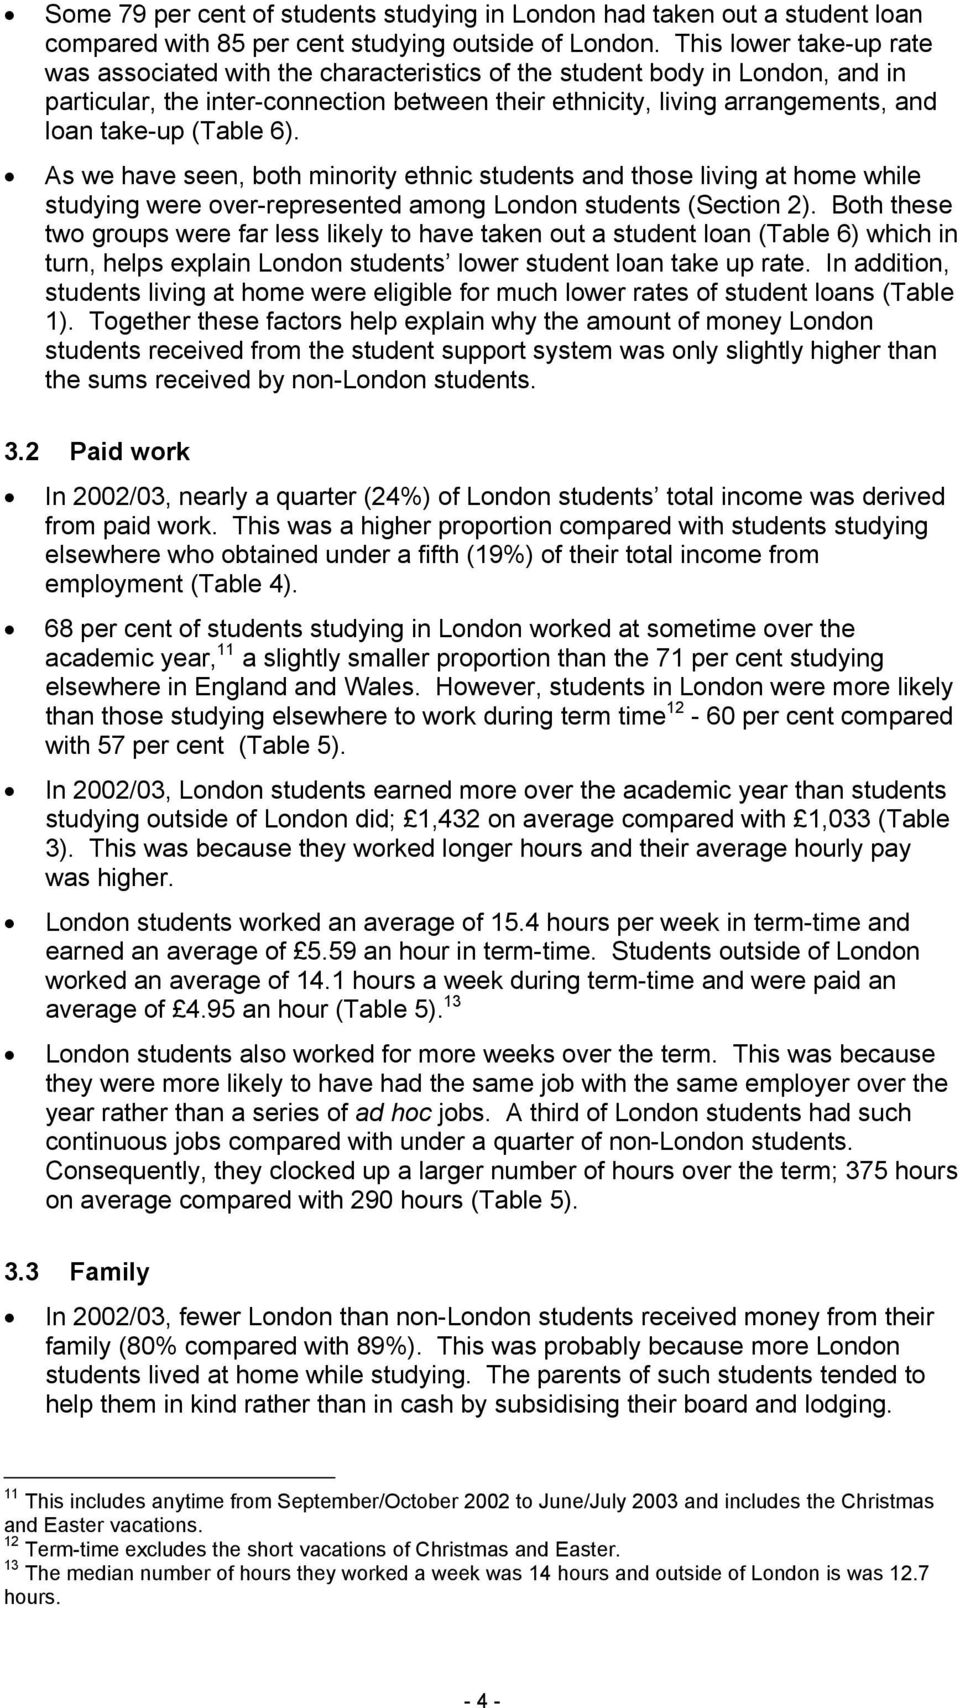 (Table 6). As we have seen, both minority ethnic students and those living at home while studying were over-represented among London students (Section 2).